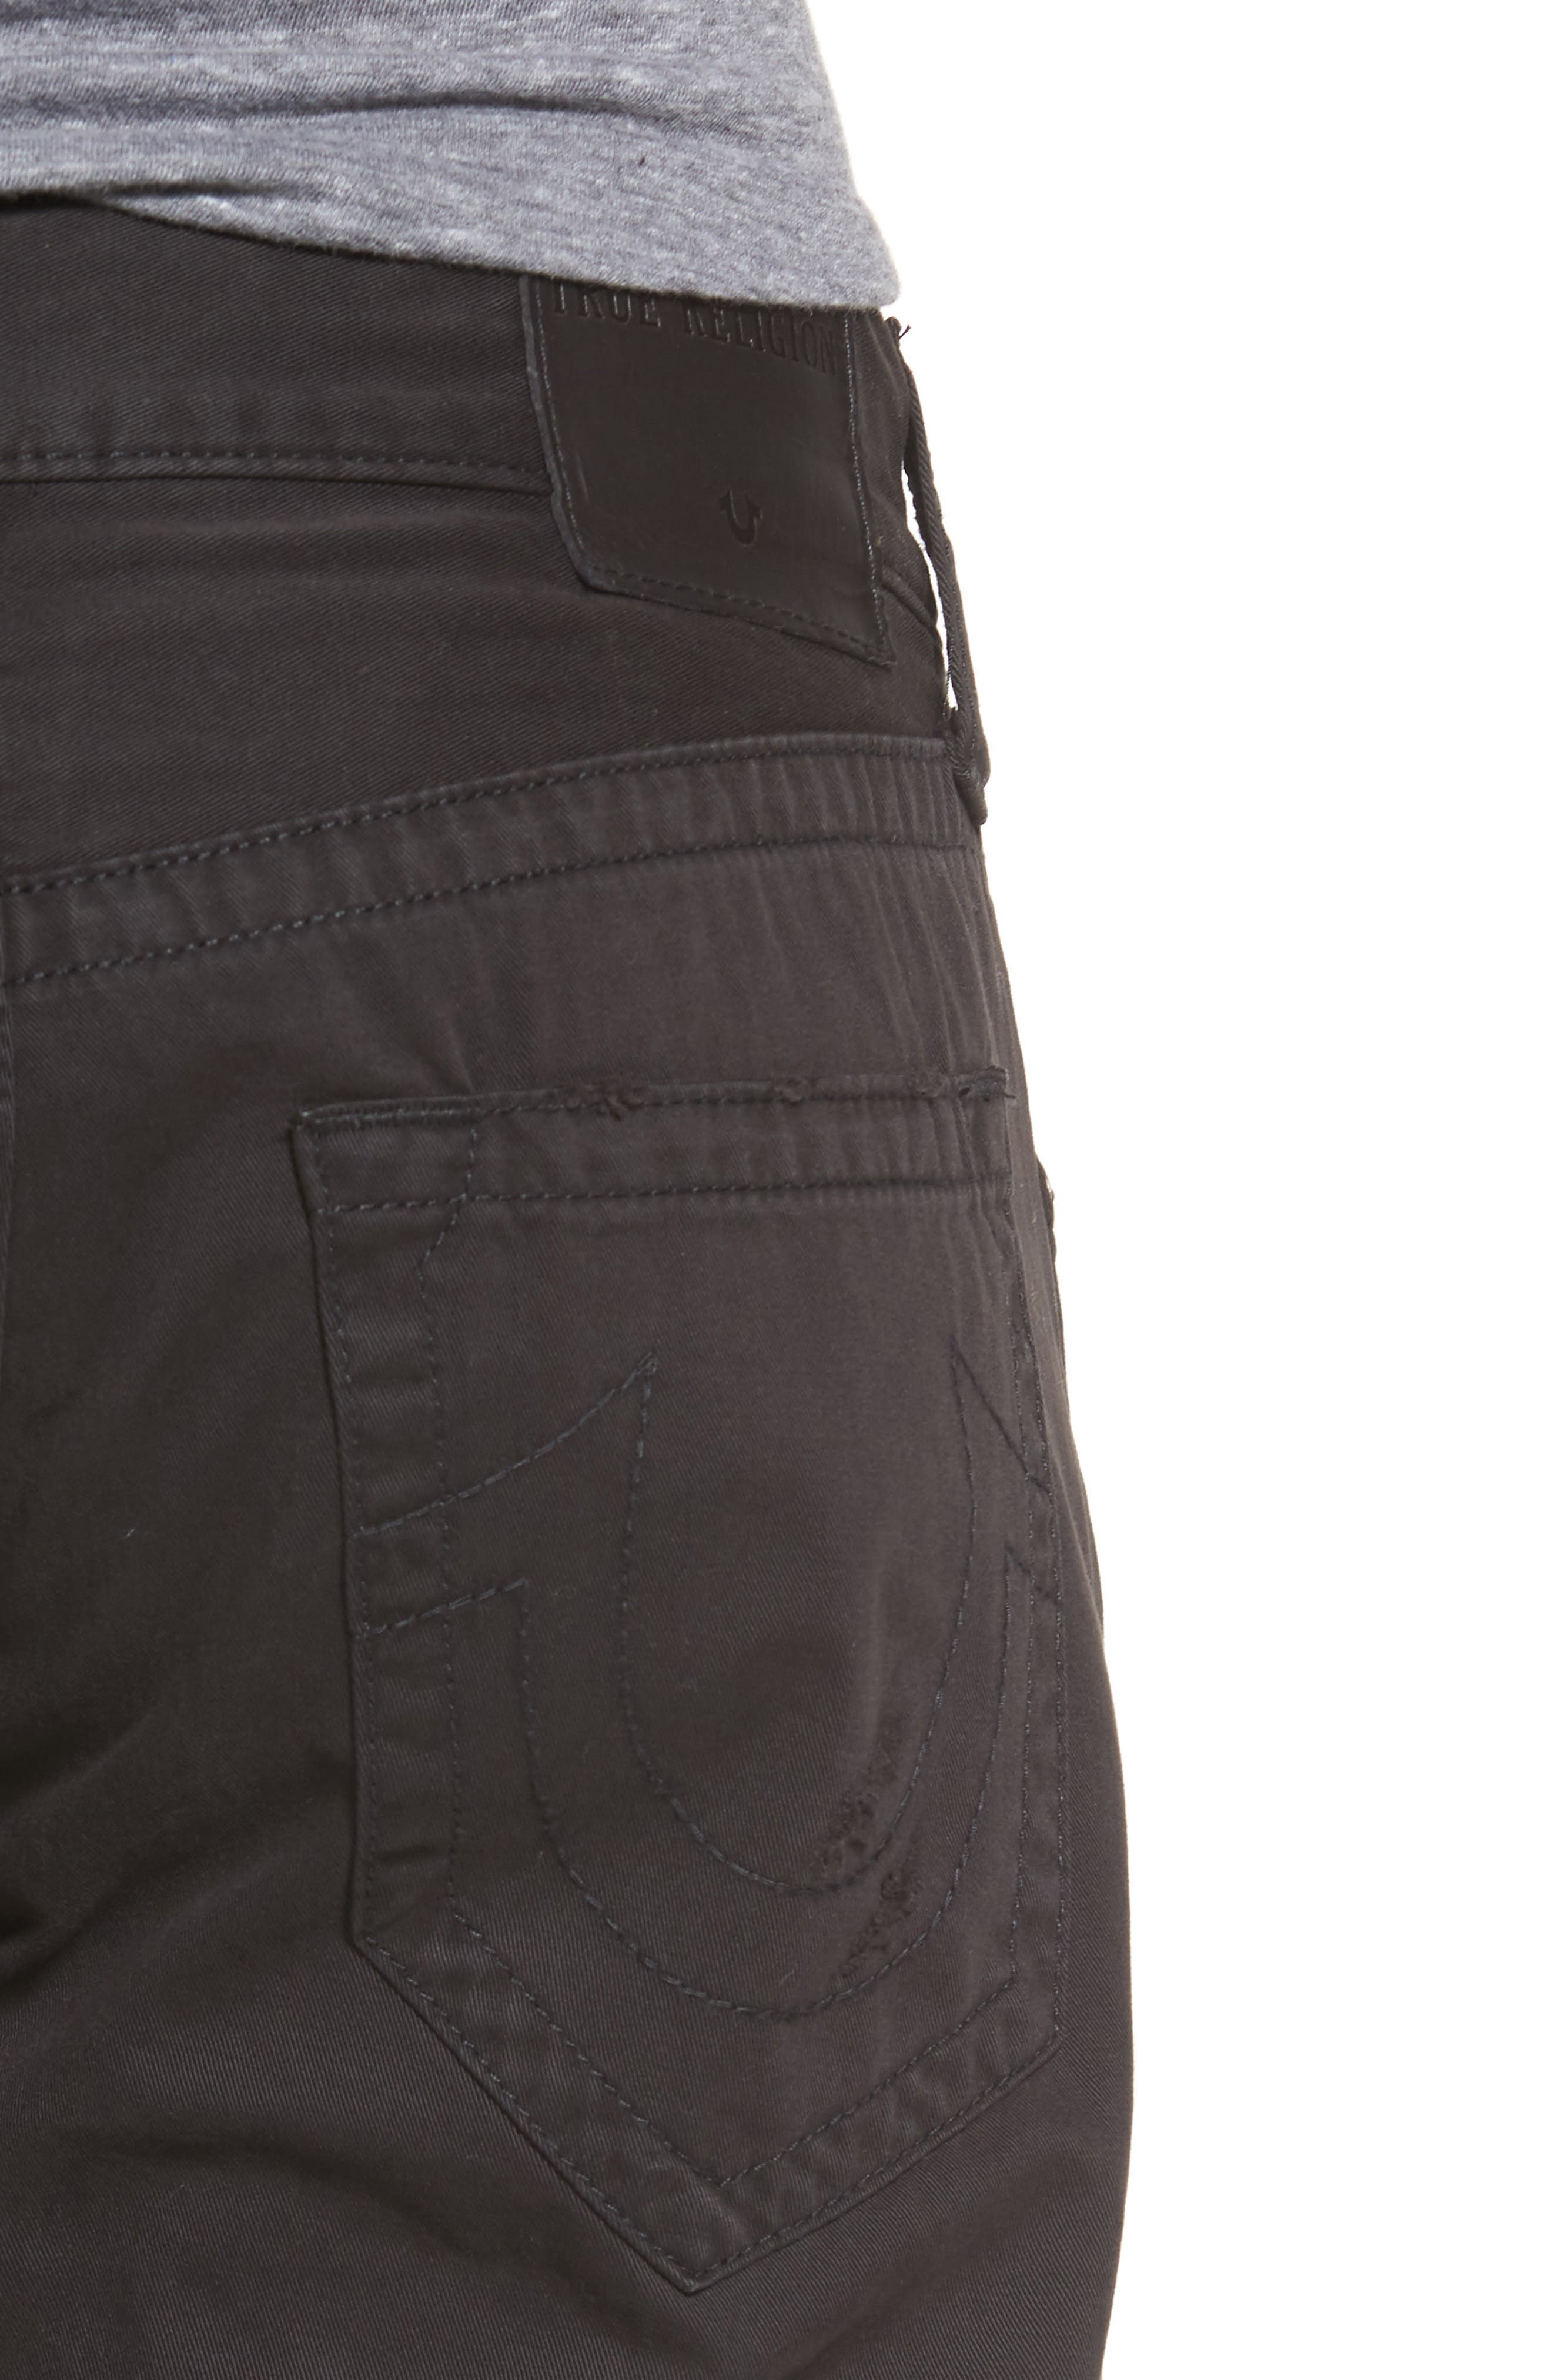 Geno Straight Fit Jeans,                             Alternate thumbnail 4, color,                             BLACK